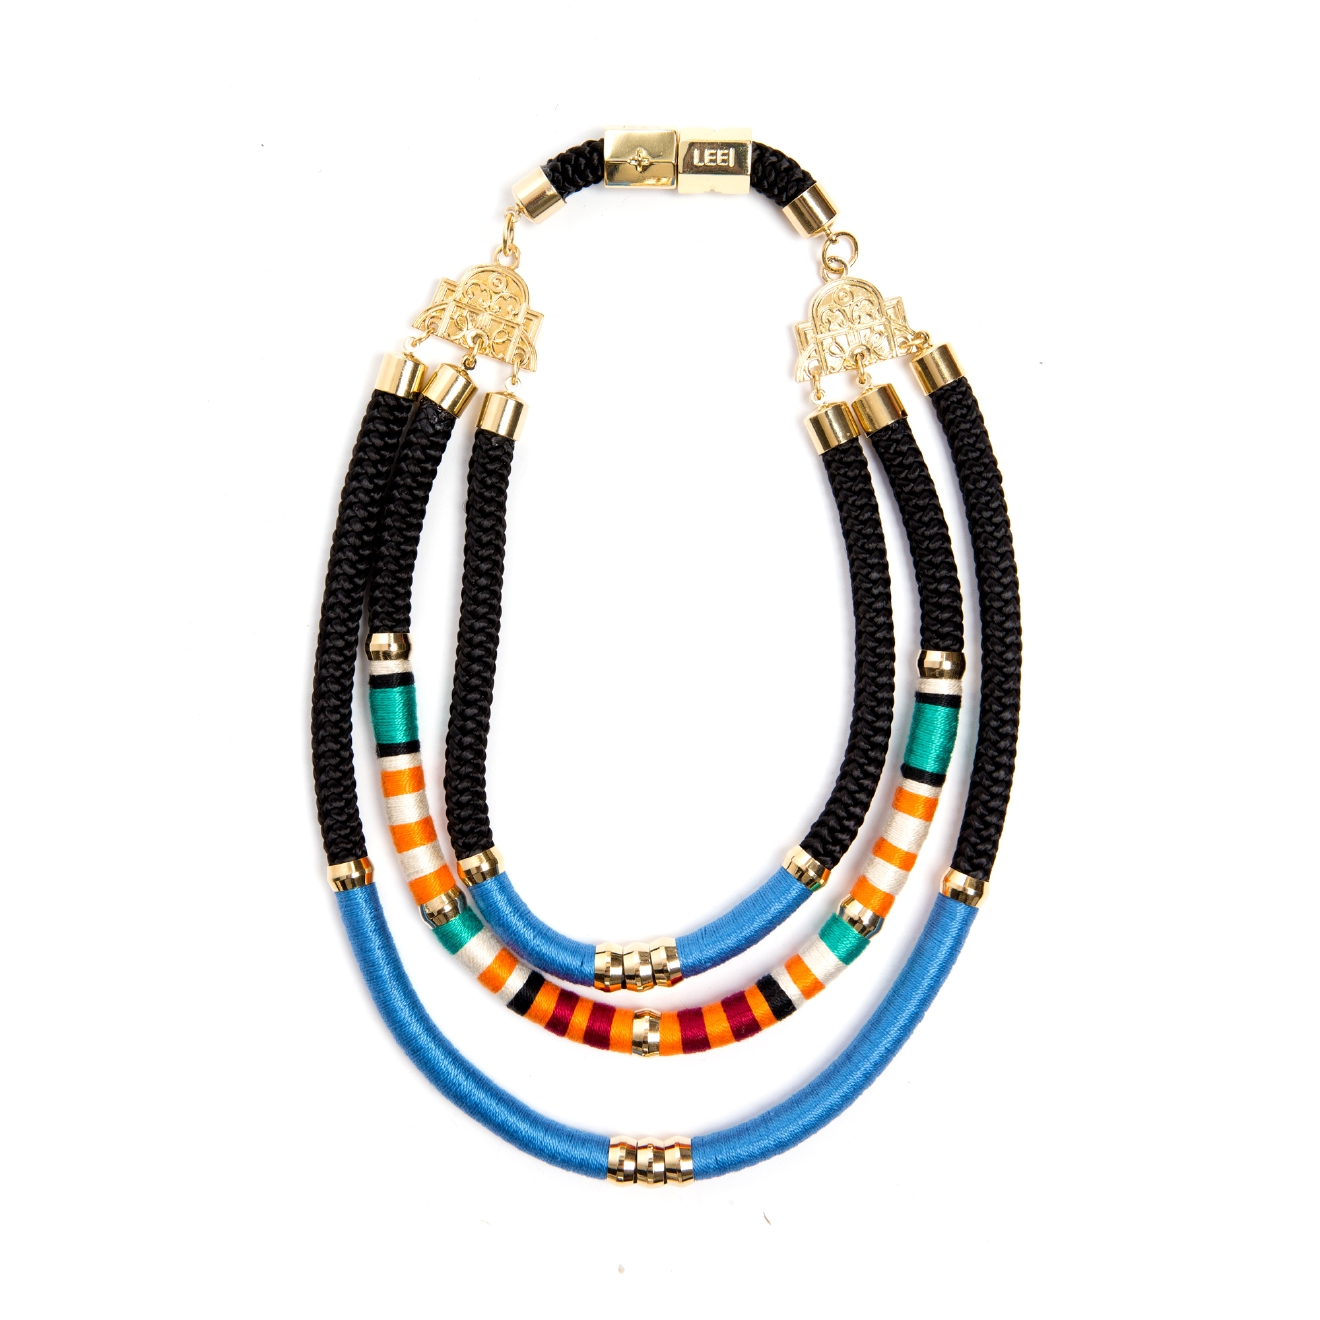 Holst + Lee Rio Grande Necklace, $225 (Tuckernuck)